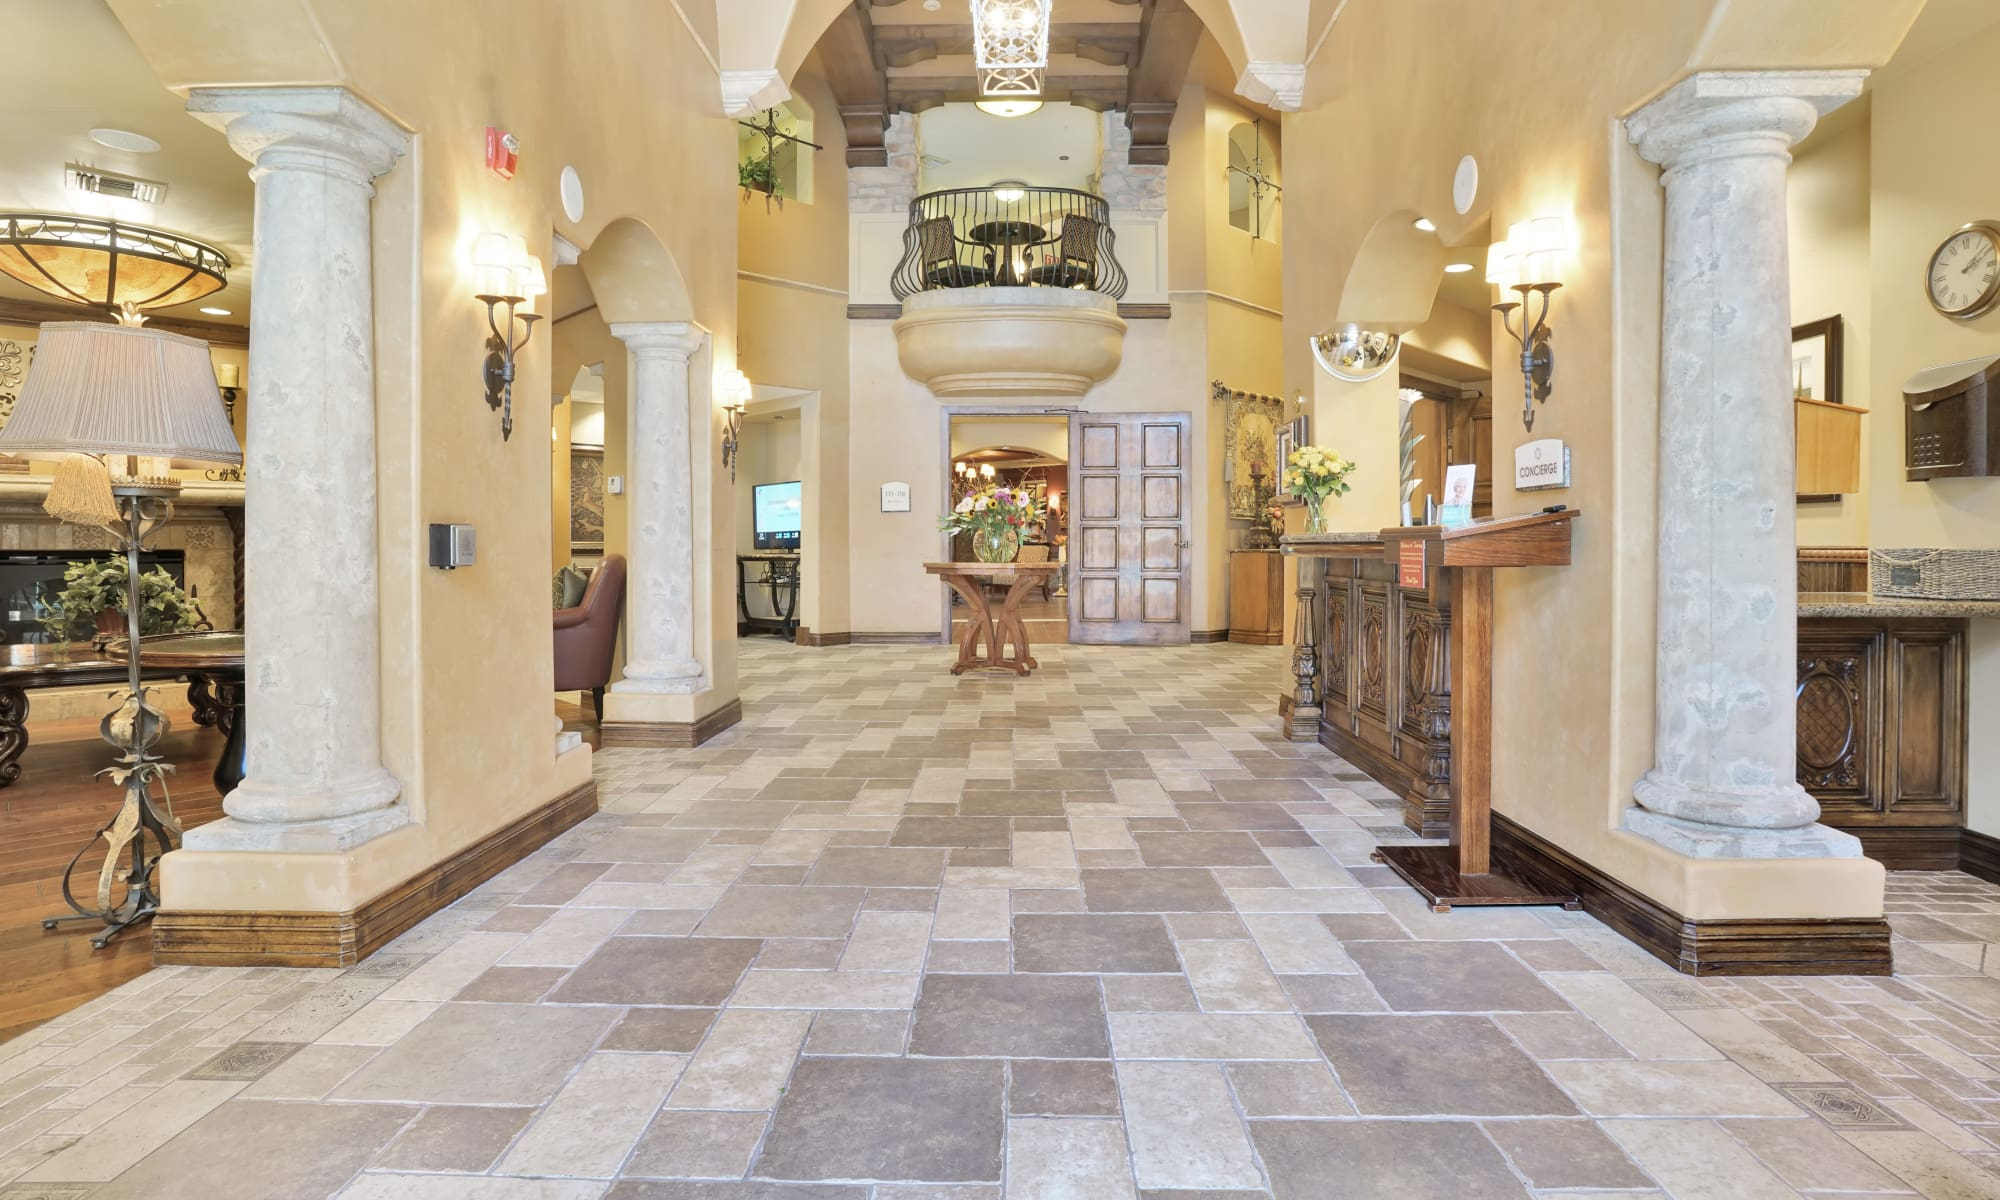 Senior Living Center | Tuscany at McCormick Ranch in Scottsdale, Arizona